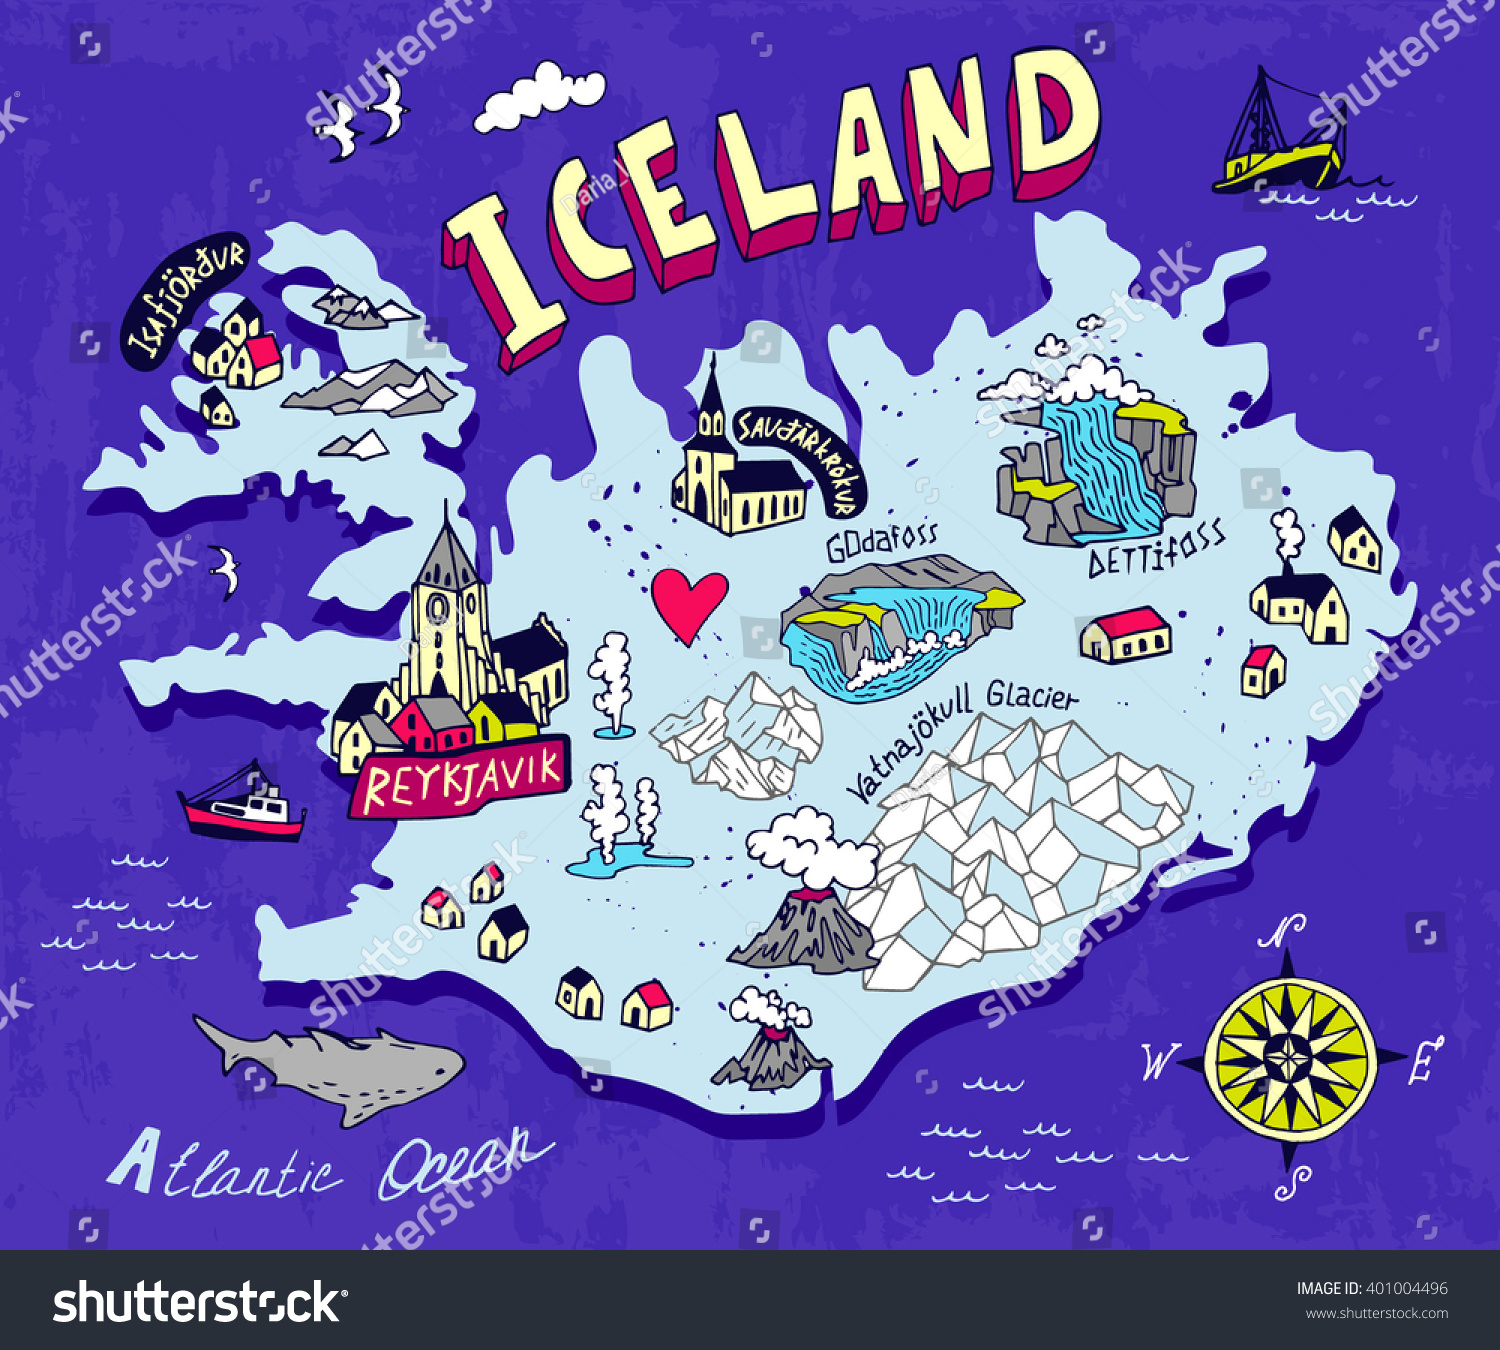 Illustrated Map Iceland Travel Cartography Vector 401004496 – Iceland Travel Map